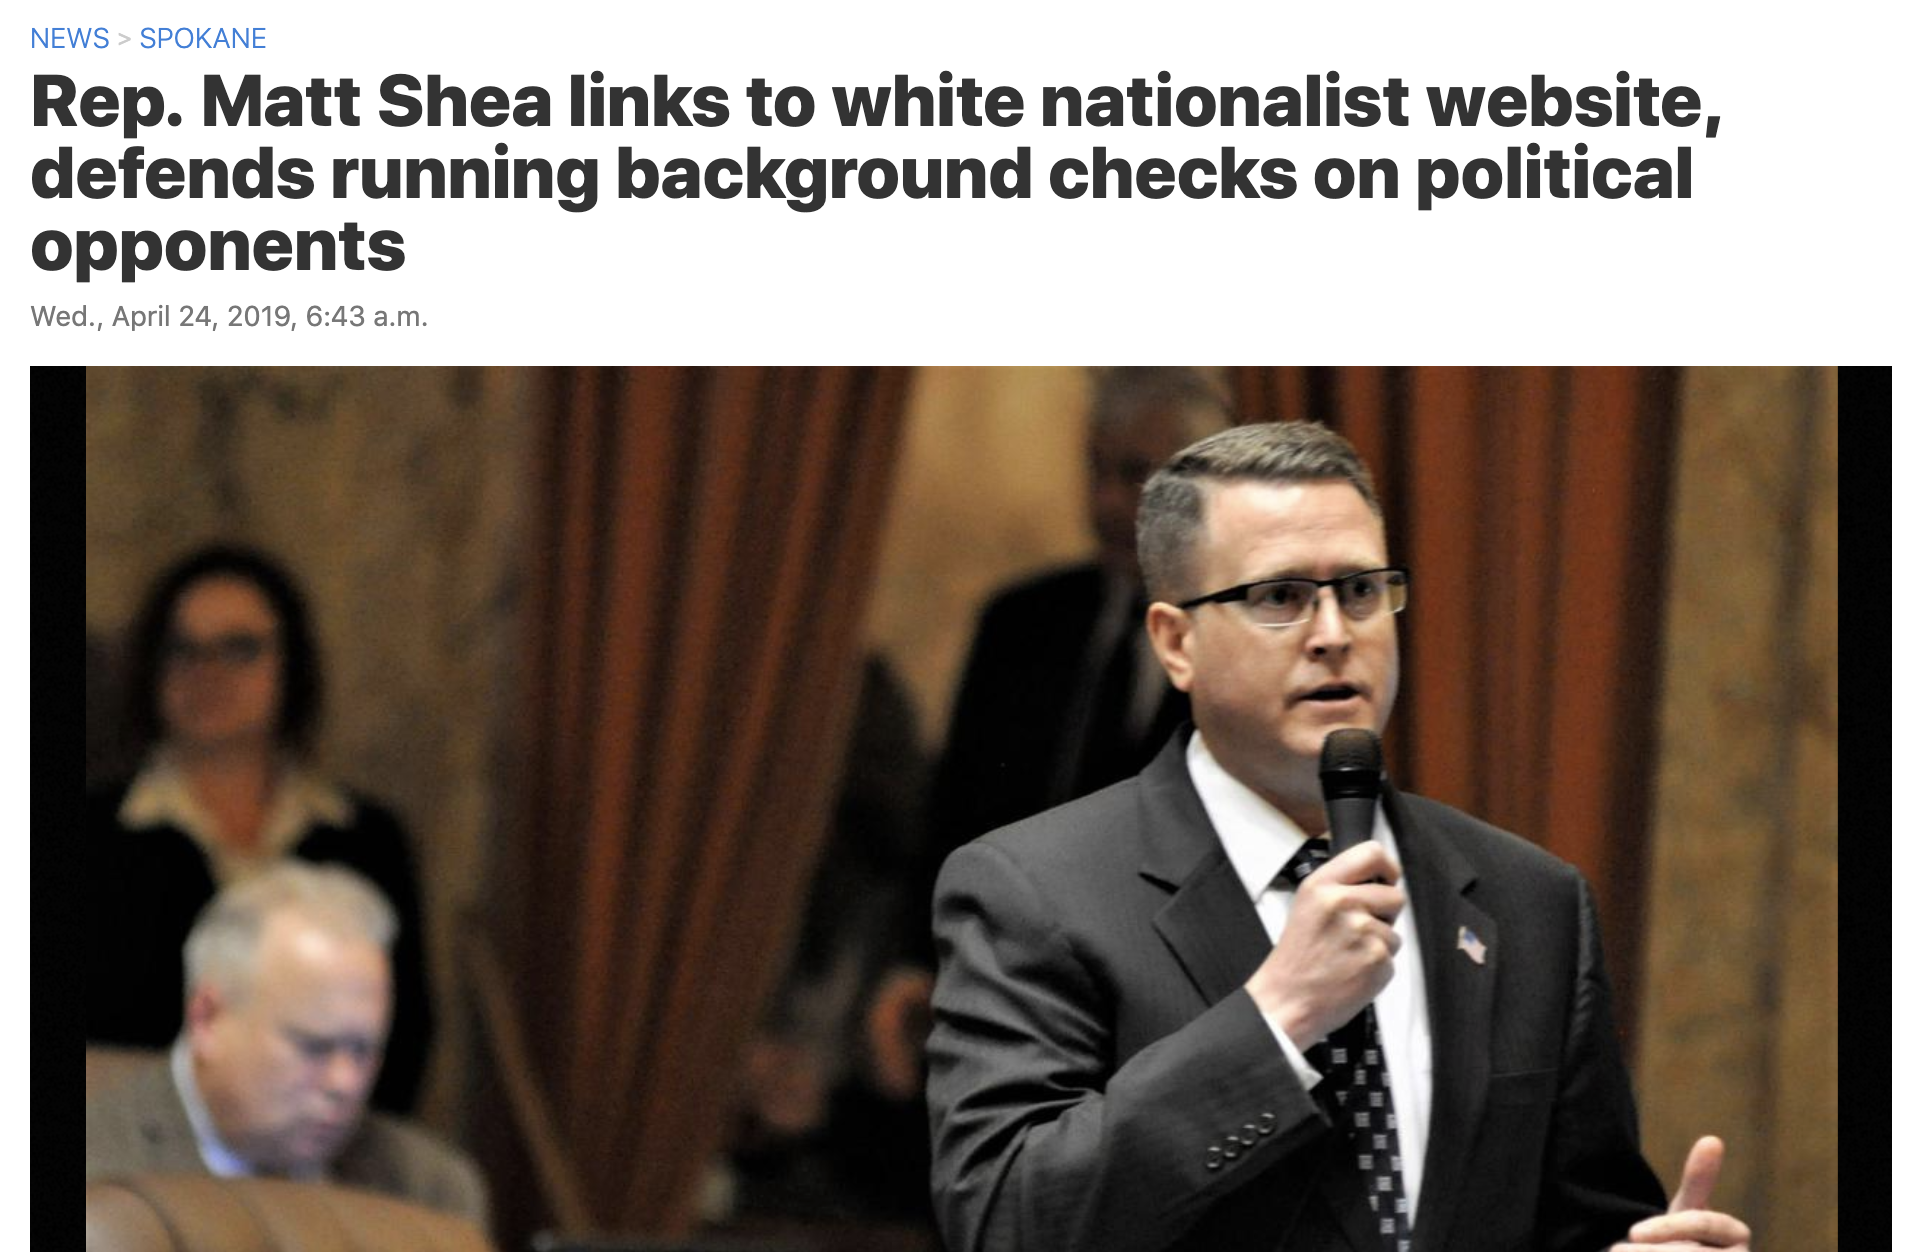 """Fuming after a new round of headlines about his interactions with far-right activists, state Rep. Matt Shea directed his 4,600 Facebook followers to an obscure Australian website that traffics in white nationalist memes and Holocaust revisionism.""   CLICK FOR FULL ARTICLE"